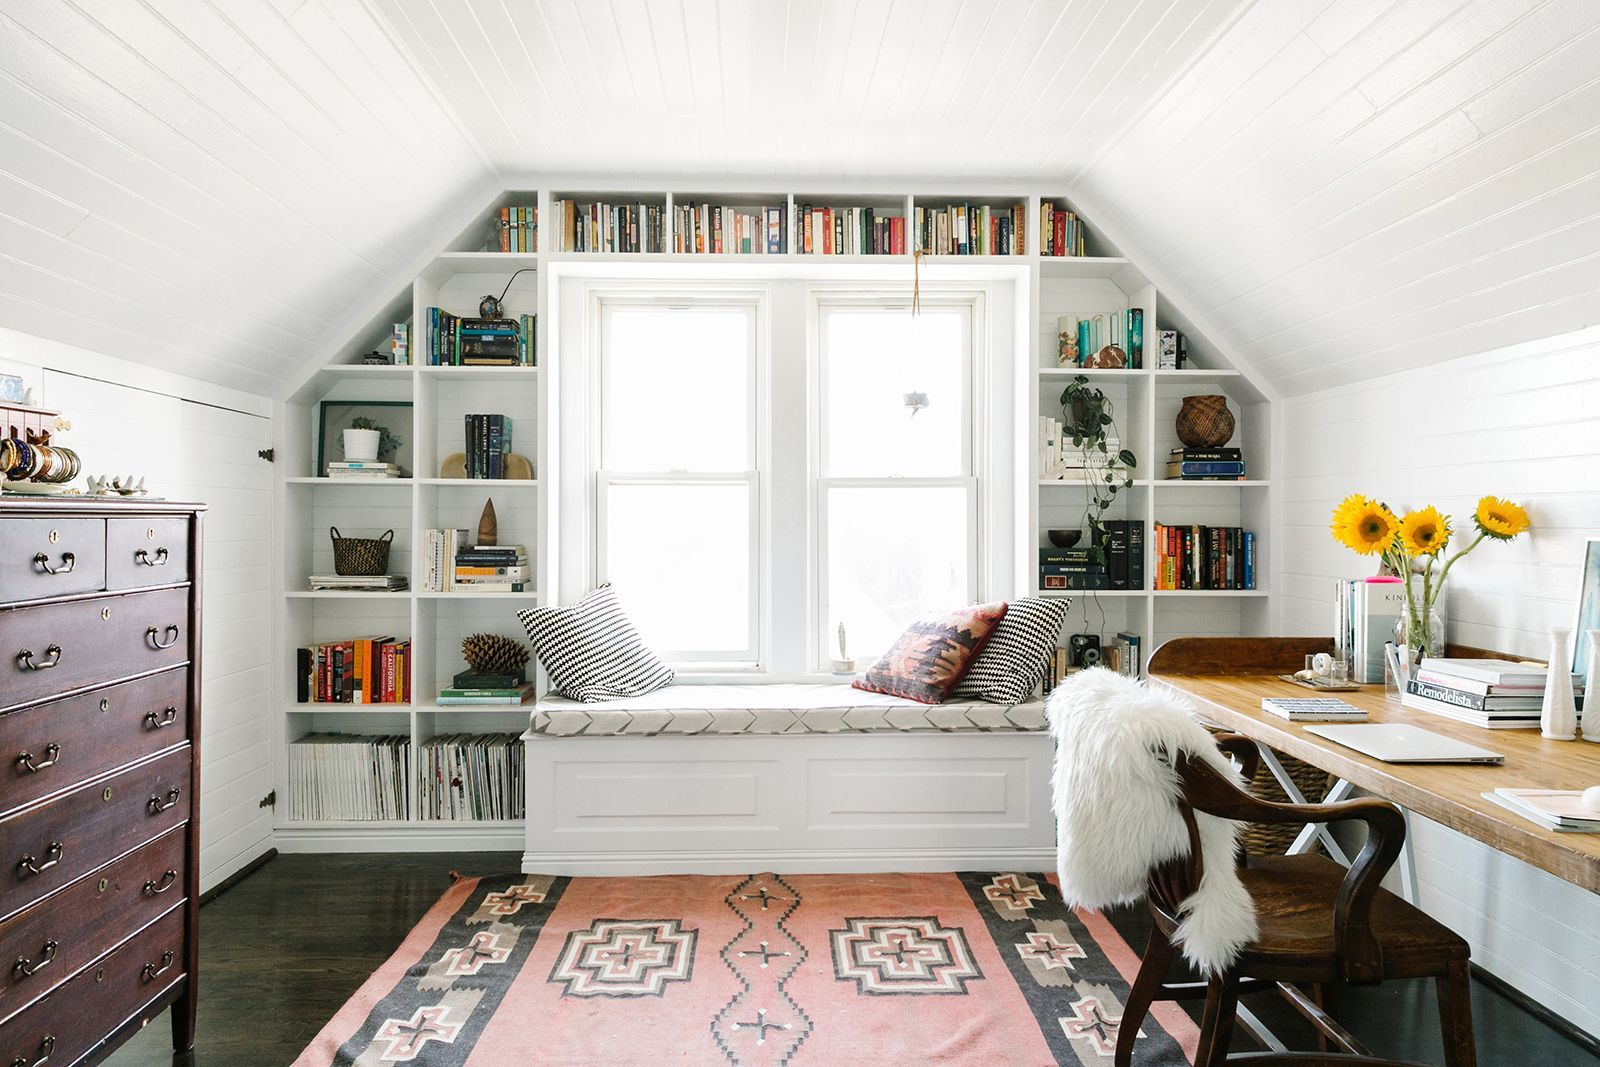 How To Decorate Like A Design Pro | Decorating, San francisco ...